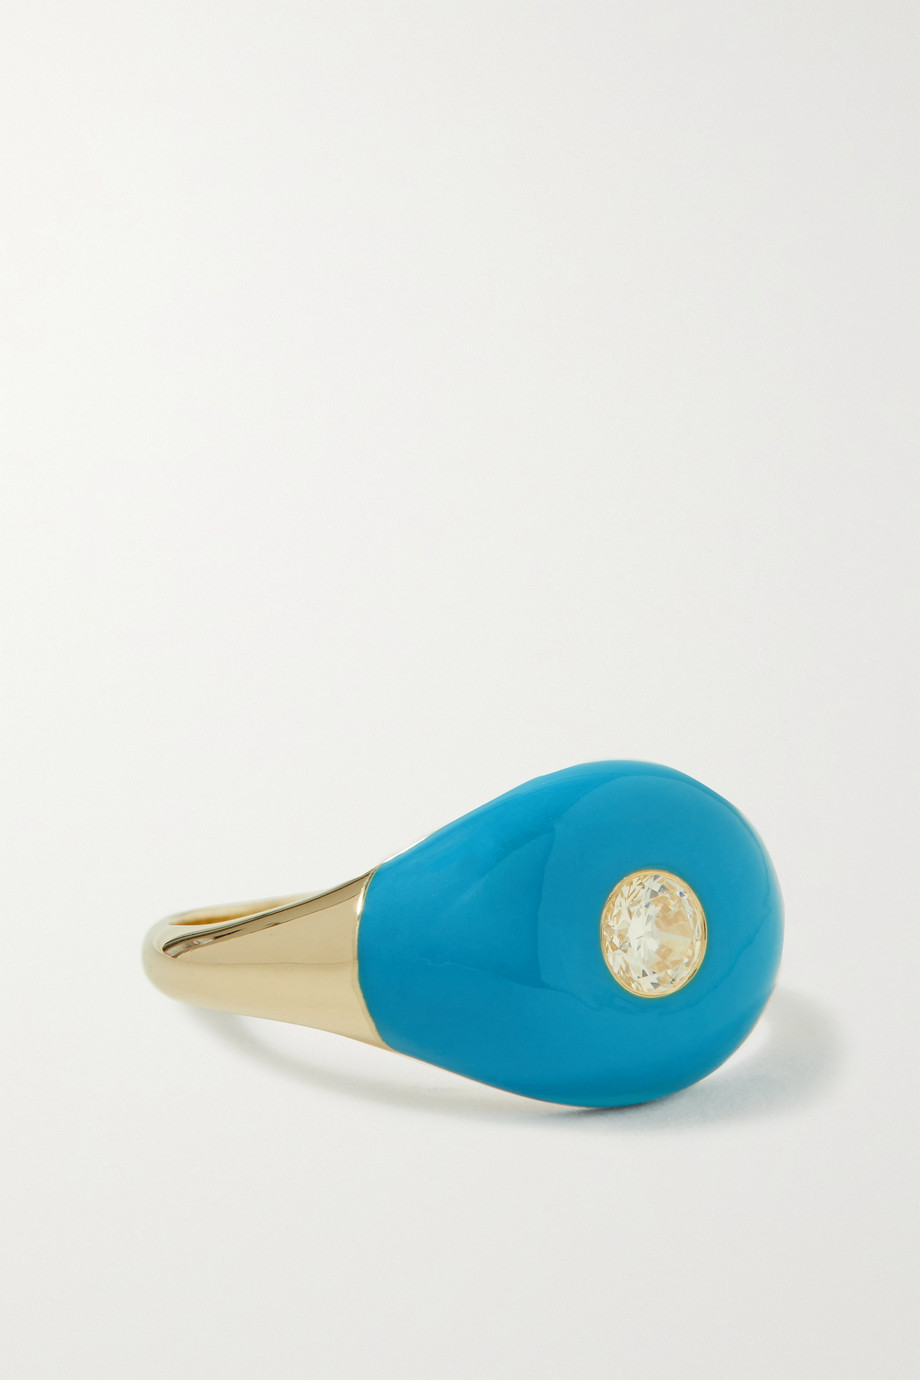 CHARMS COMPANY Les Bonbons 14-karat gold, enamel and quartz ring